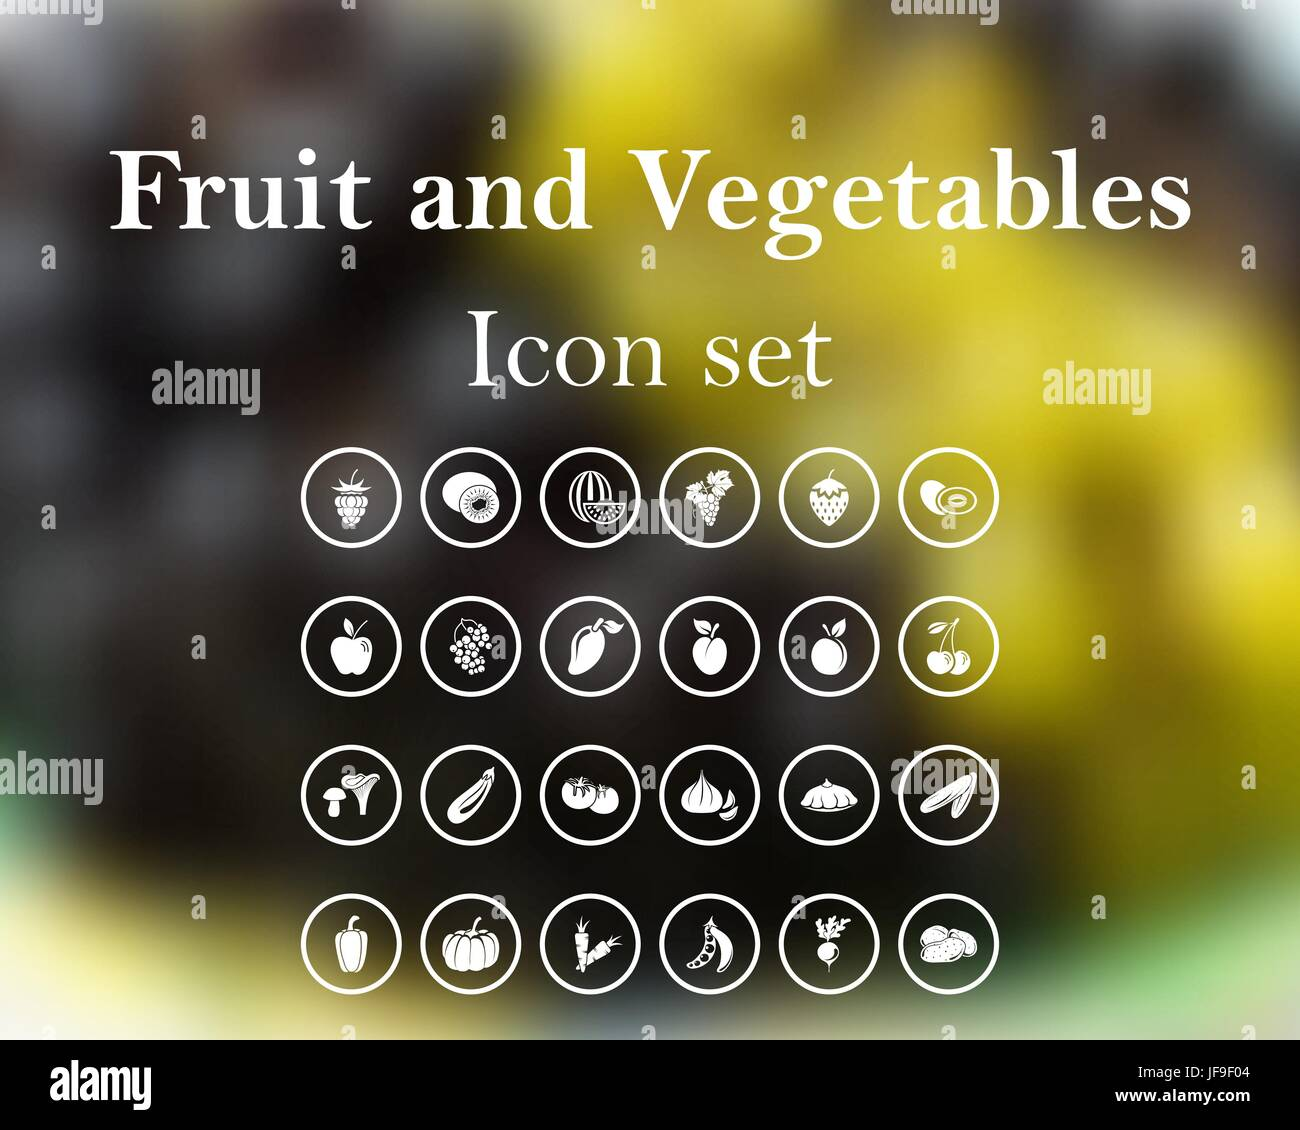 Fruit and vegetables - Stock Vector